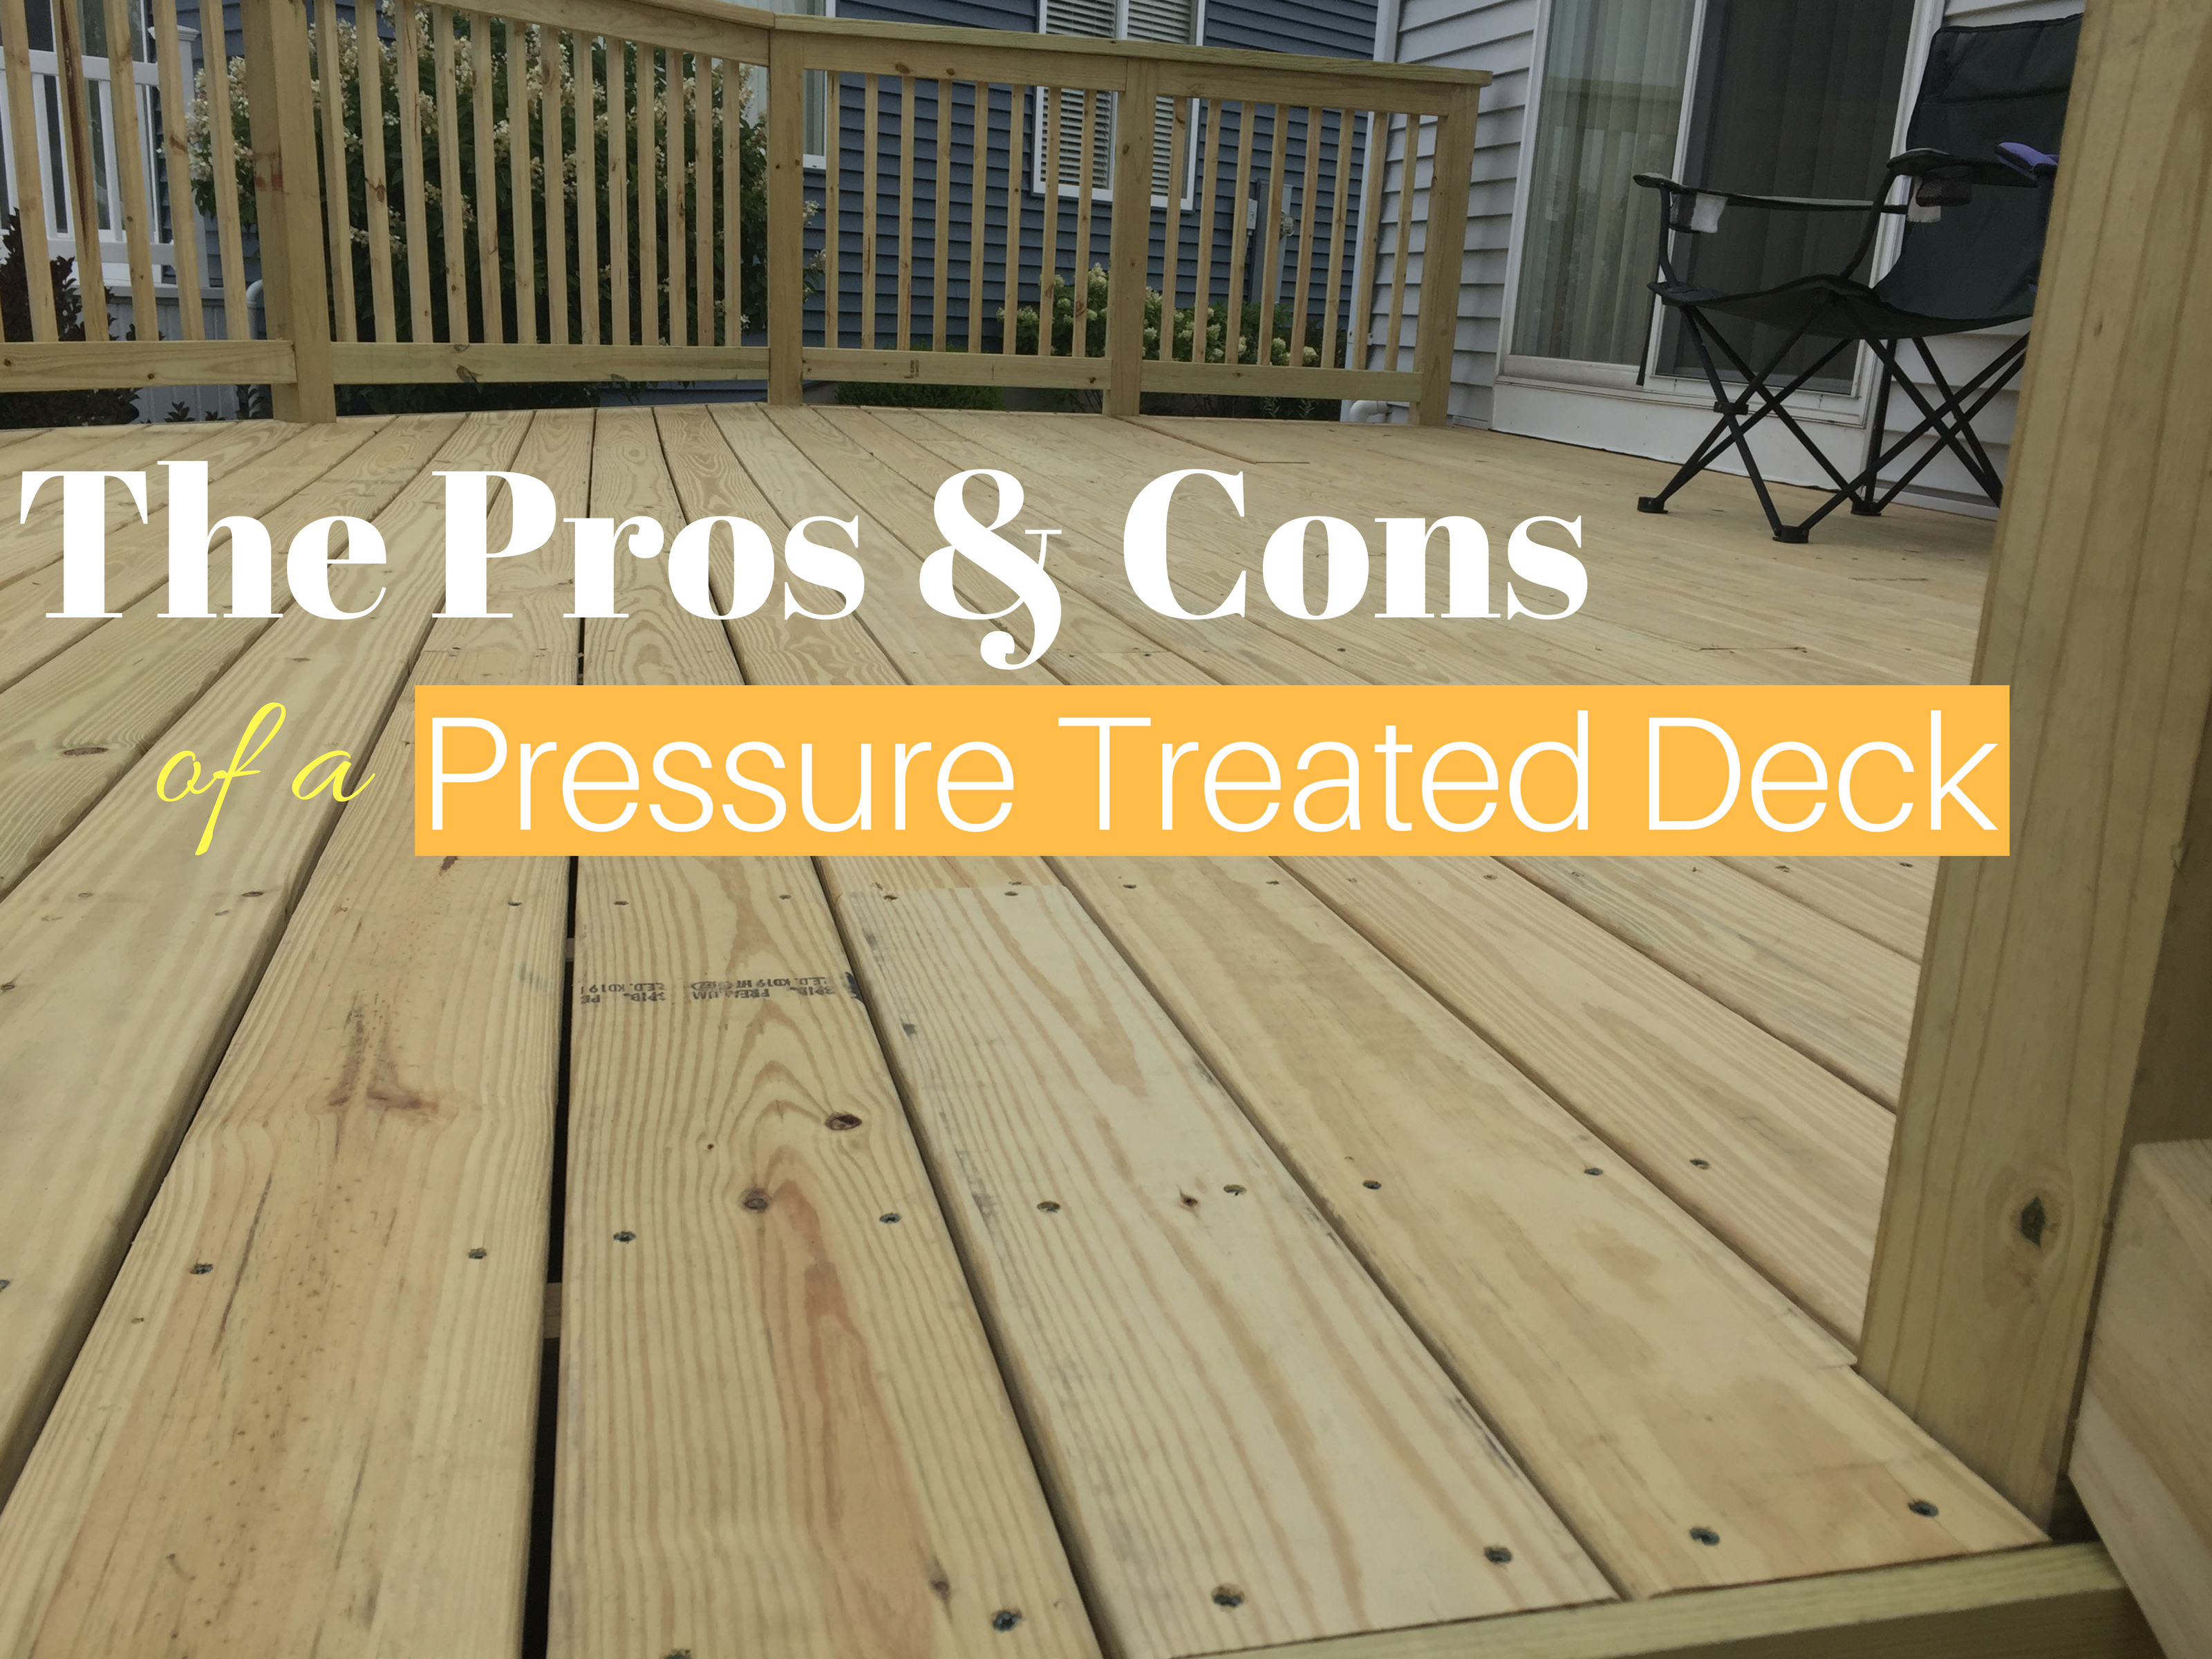 The Pros Cons Of A Pressure Treated Wood Deck General Contractor pertaining to size 3200 X 2400